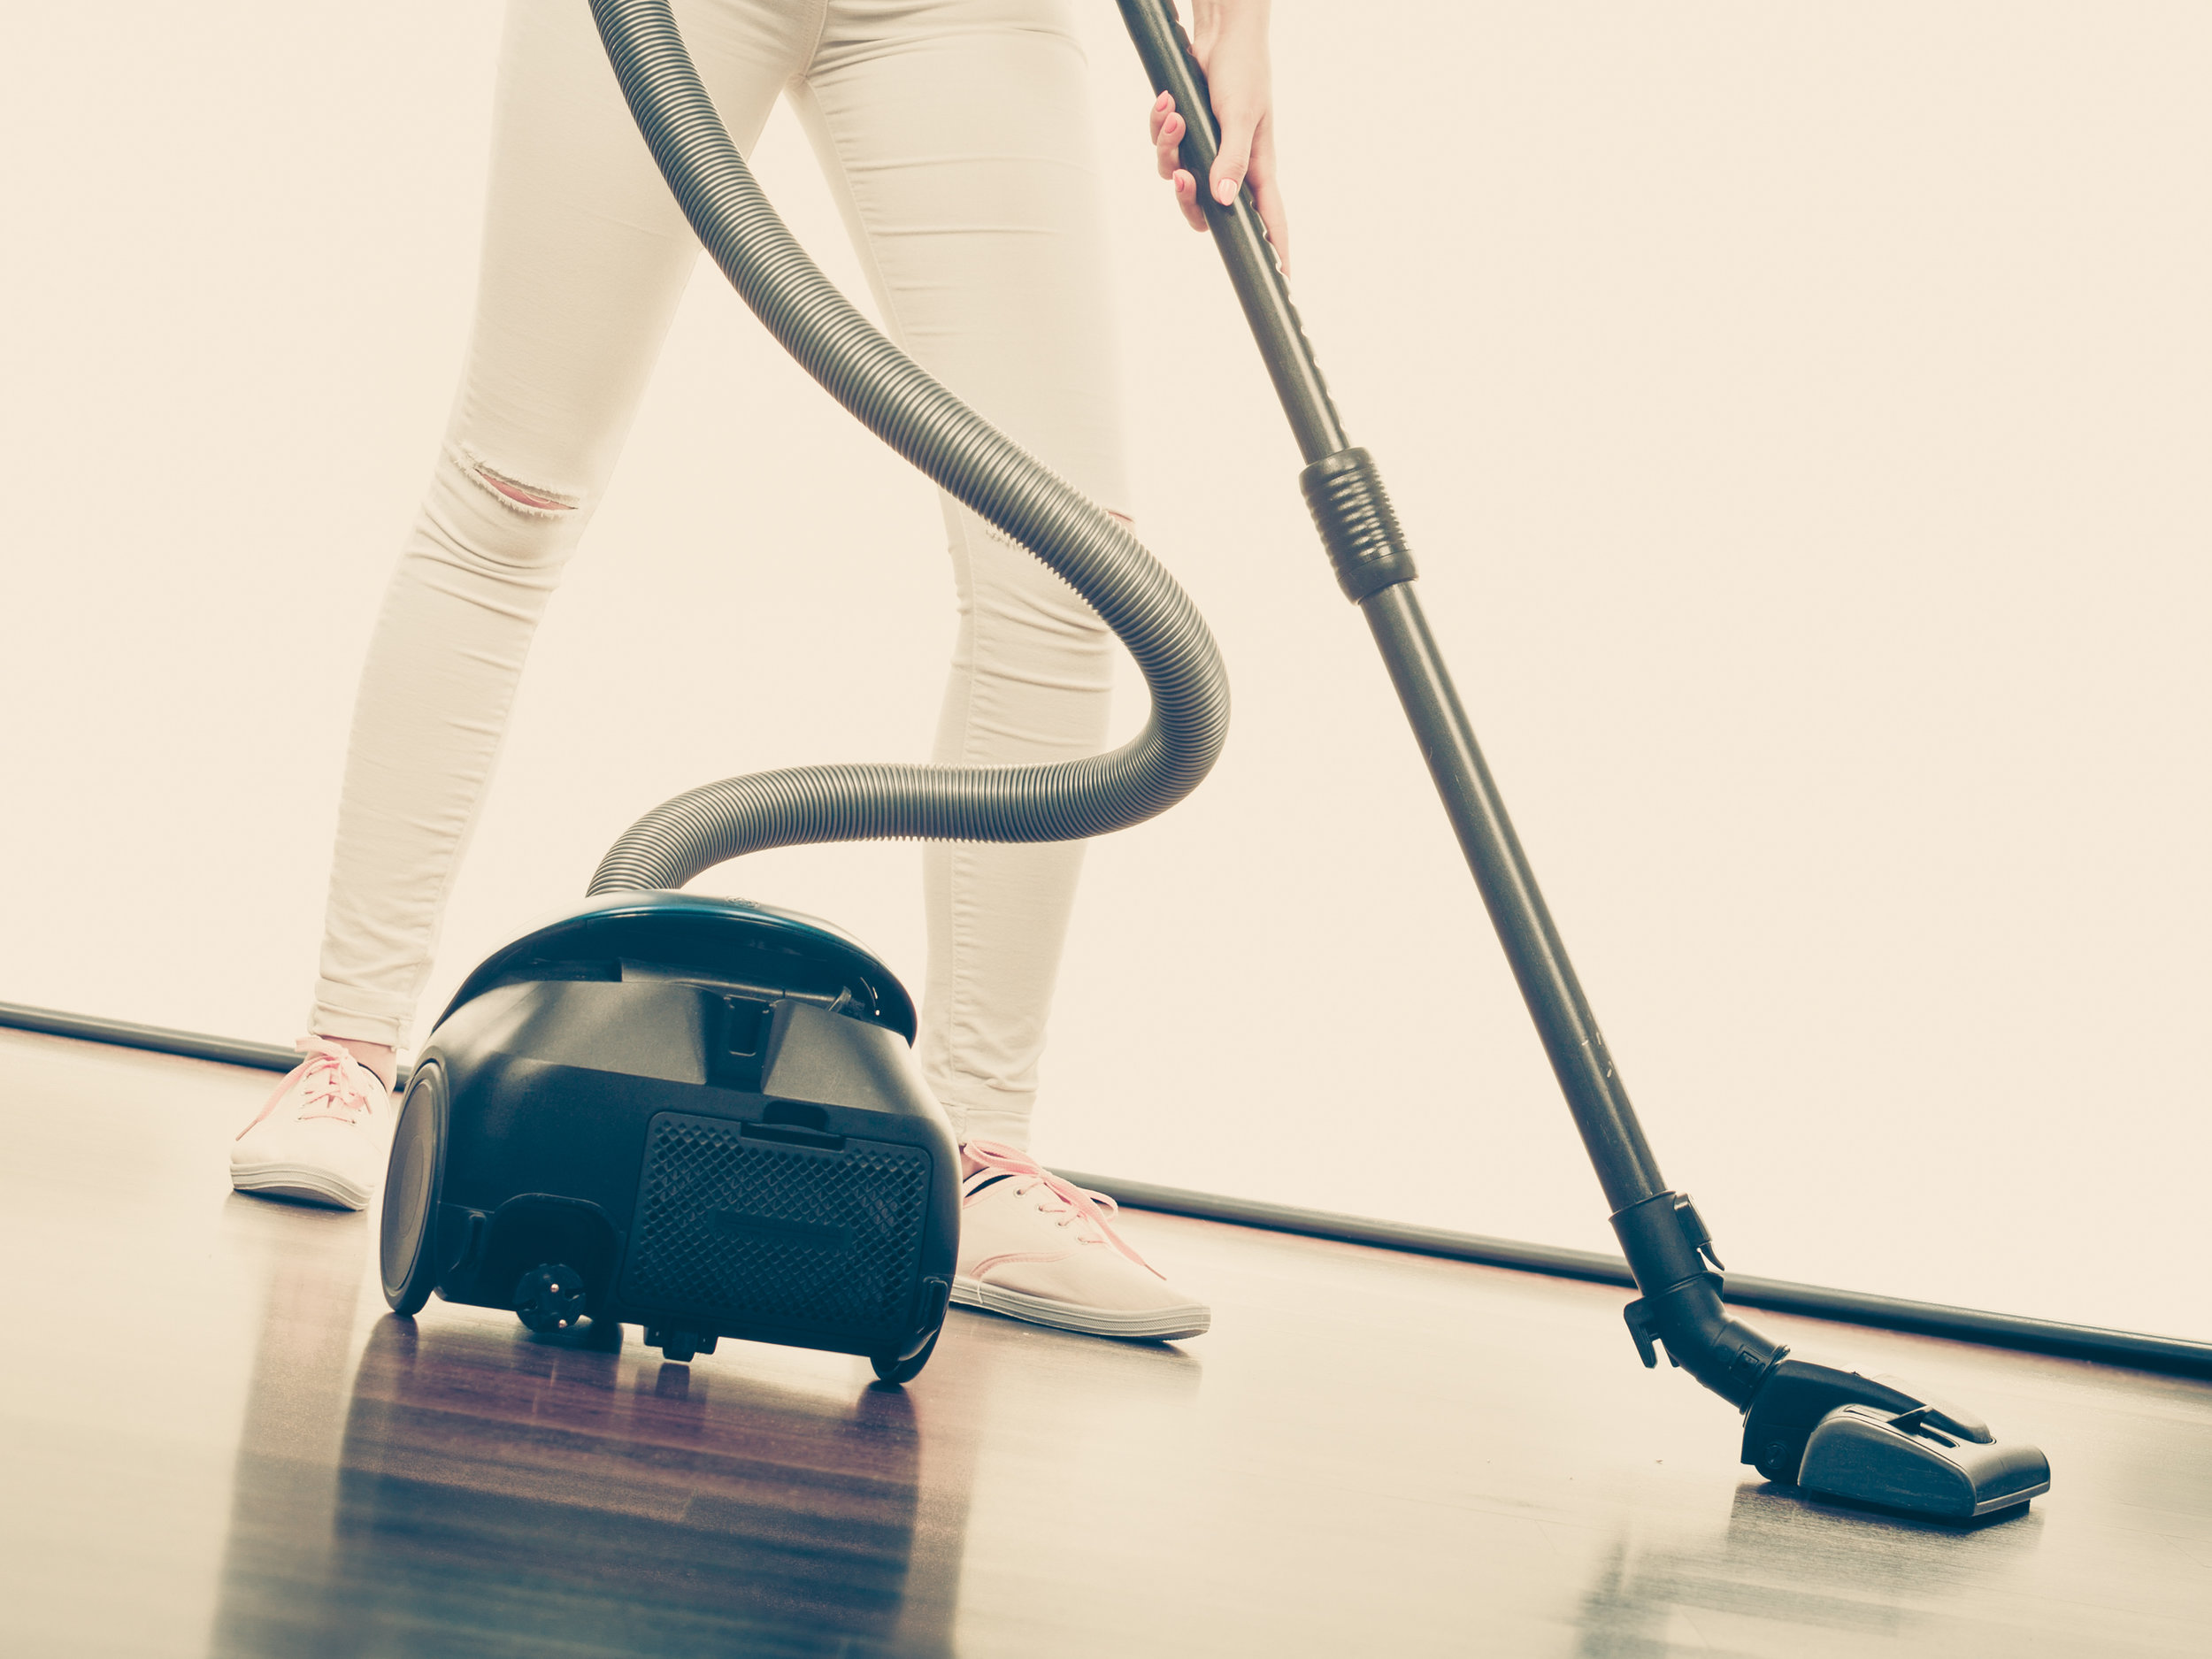 Vacuum cleaners about to get quieter and do the same job with less energy